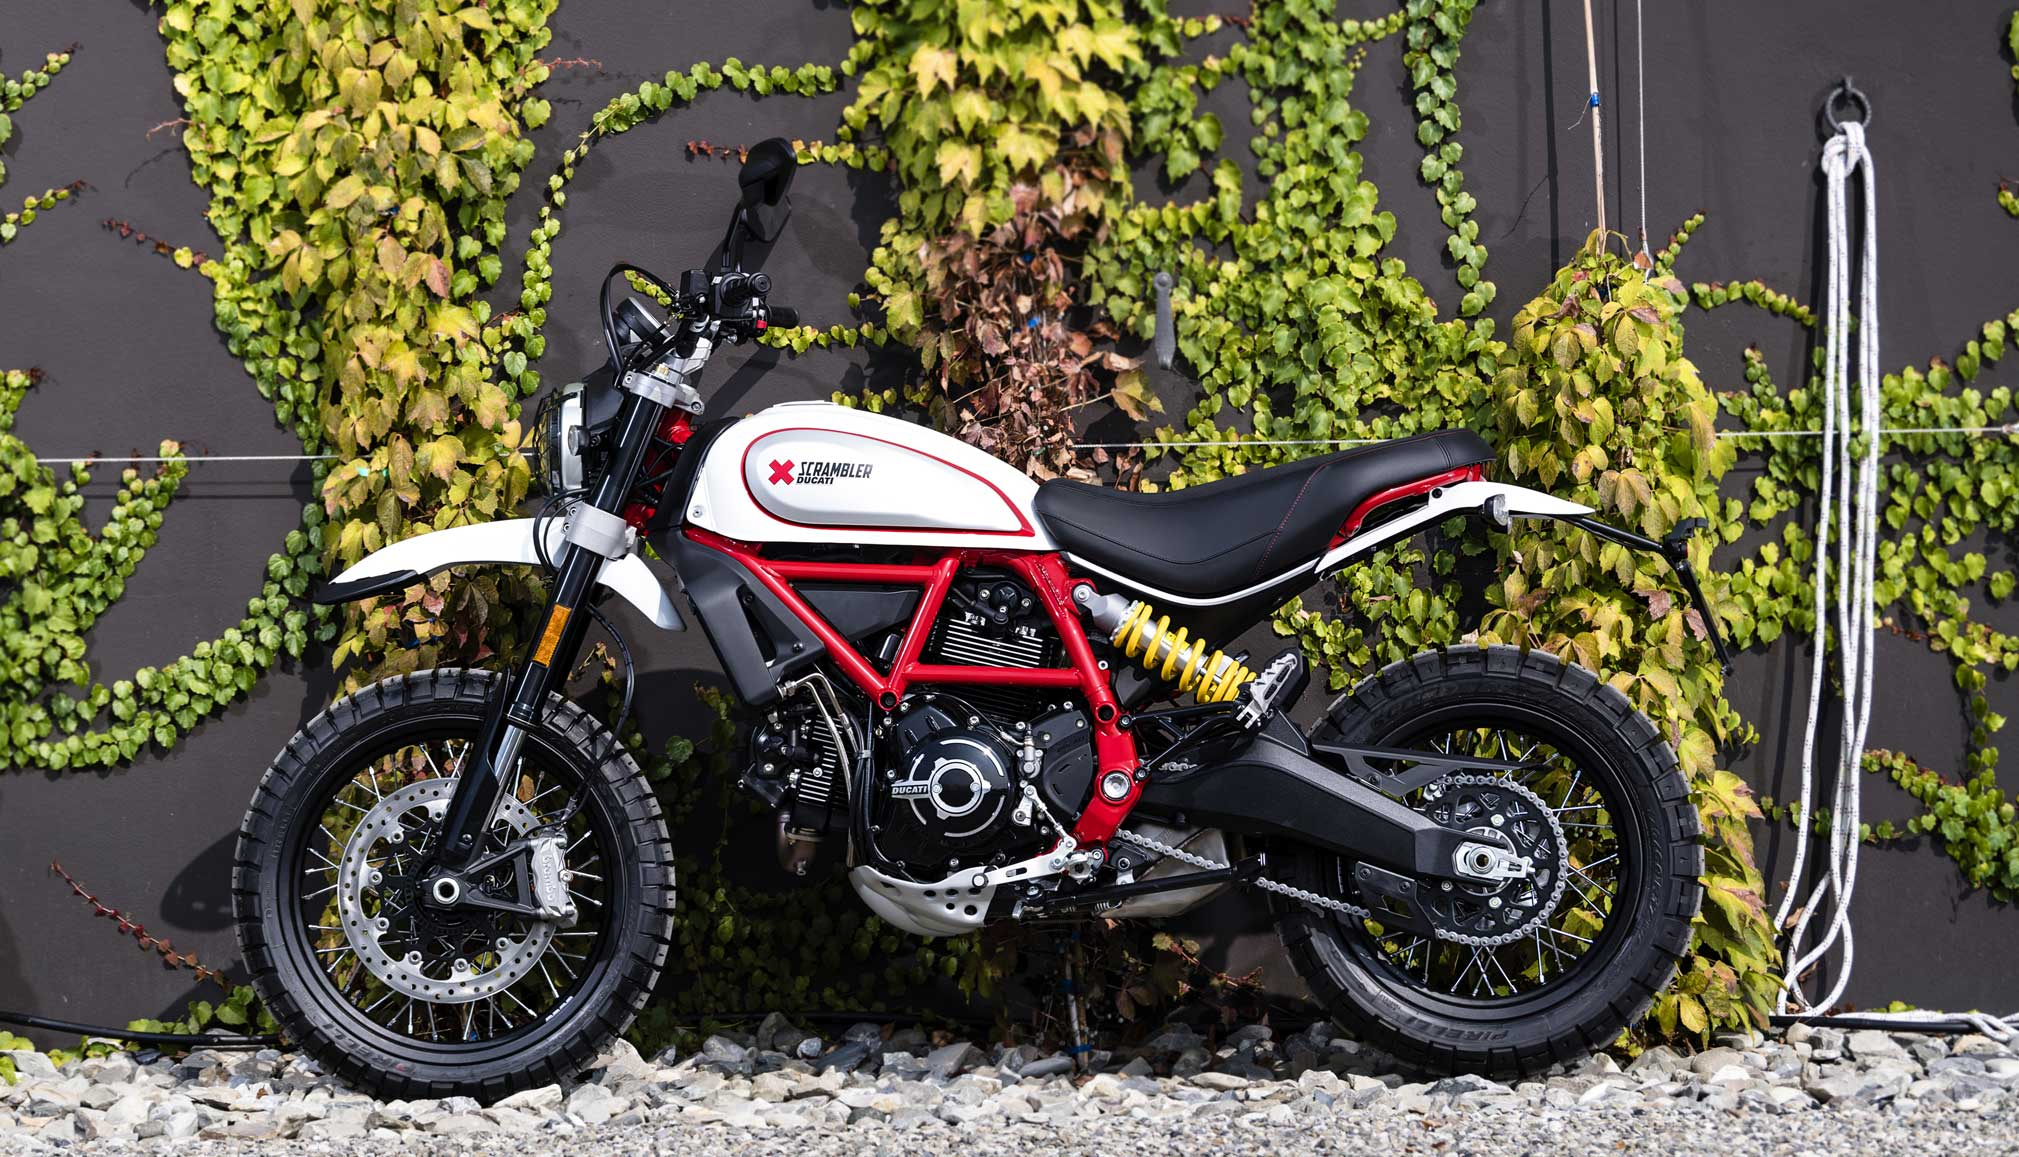 2019 ducati scrambler desert sled guide total motorcycle. Black Bedroom Furniture Sets. Home Design Ideas